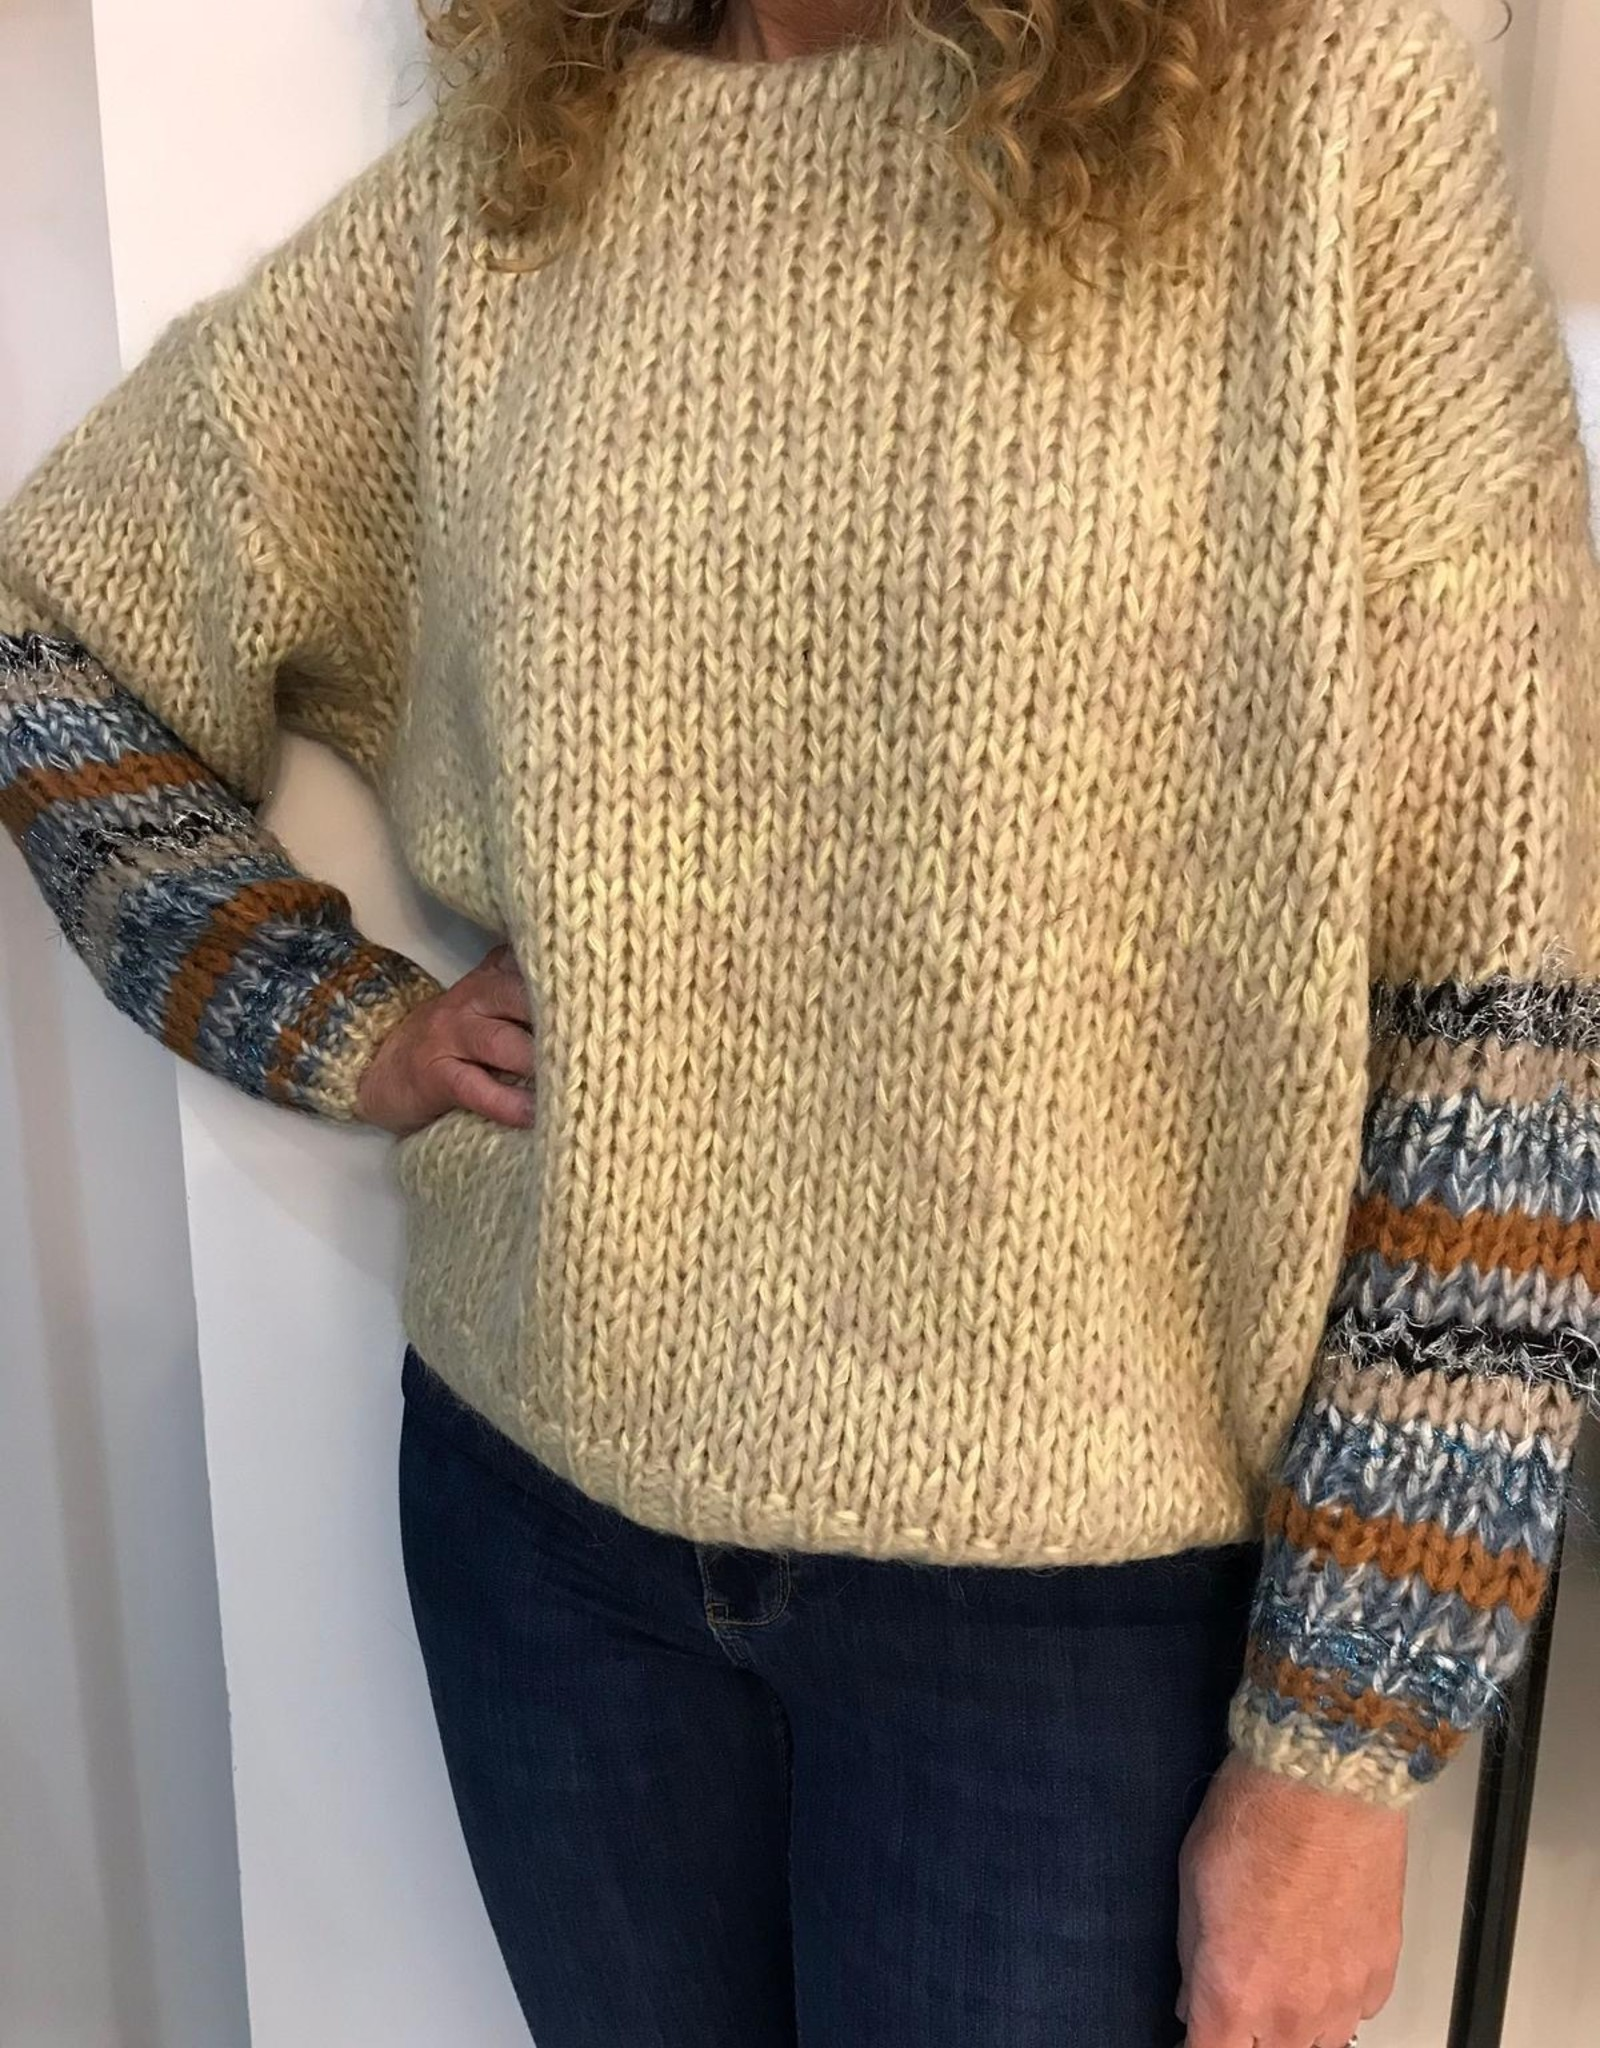 COSTER COPENHAGEN COSTER HAND KNITTED SWEATER 2561